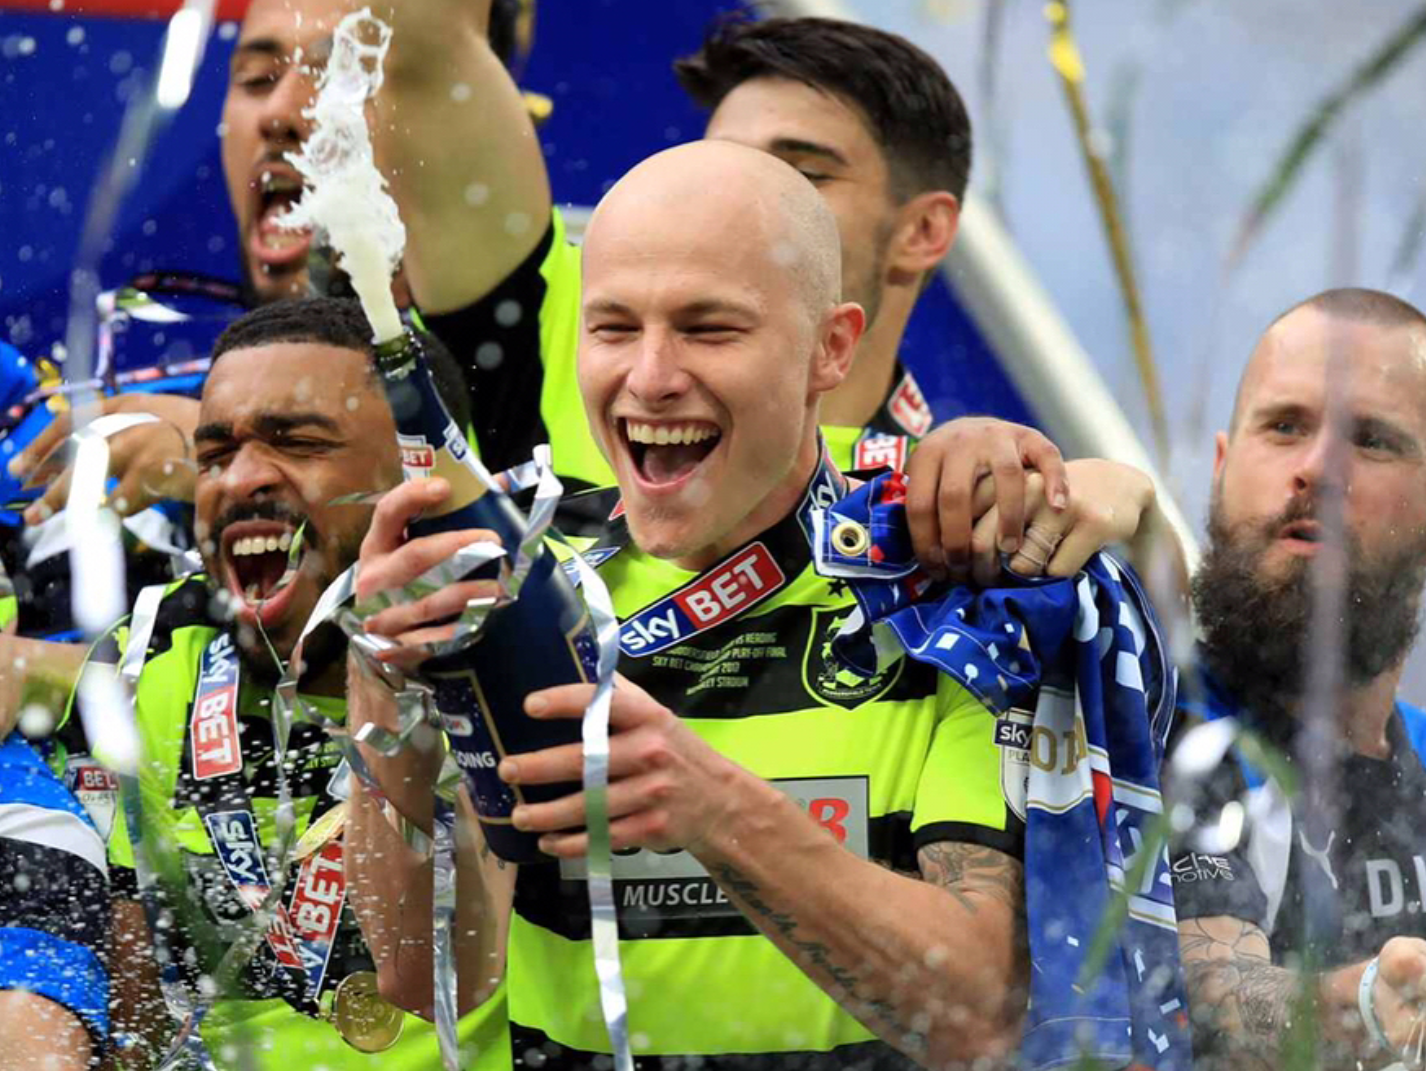 Manchester City Loanee Midfielder Aaron Mooy lifts trophy